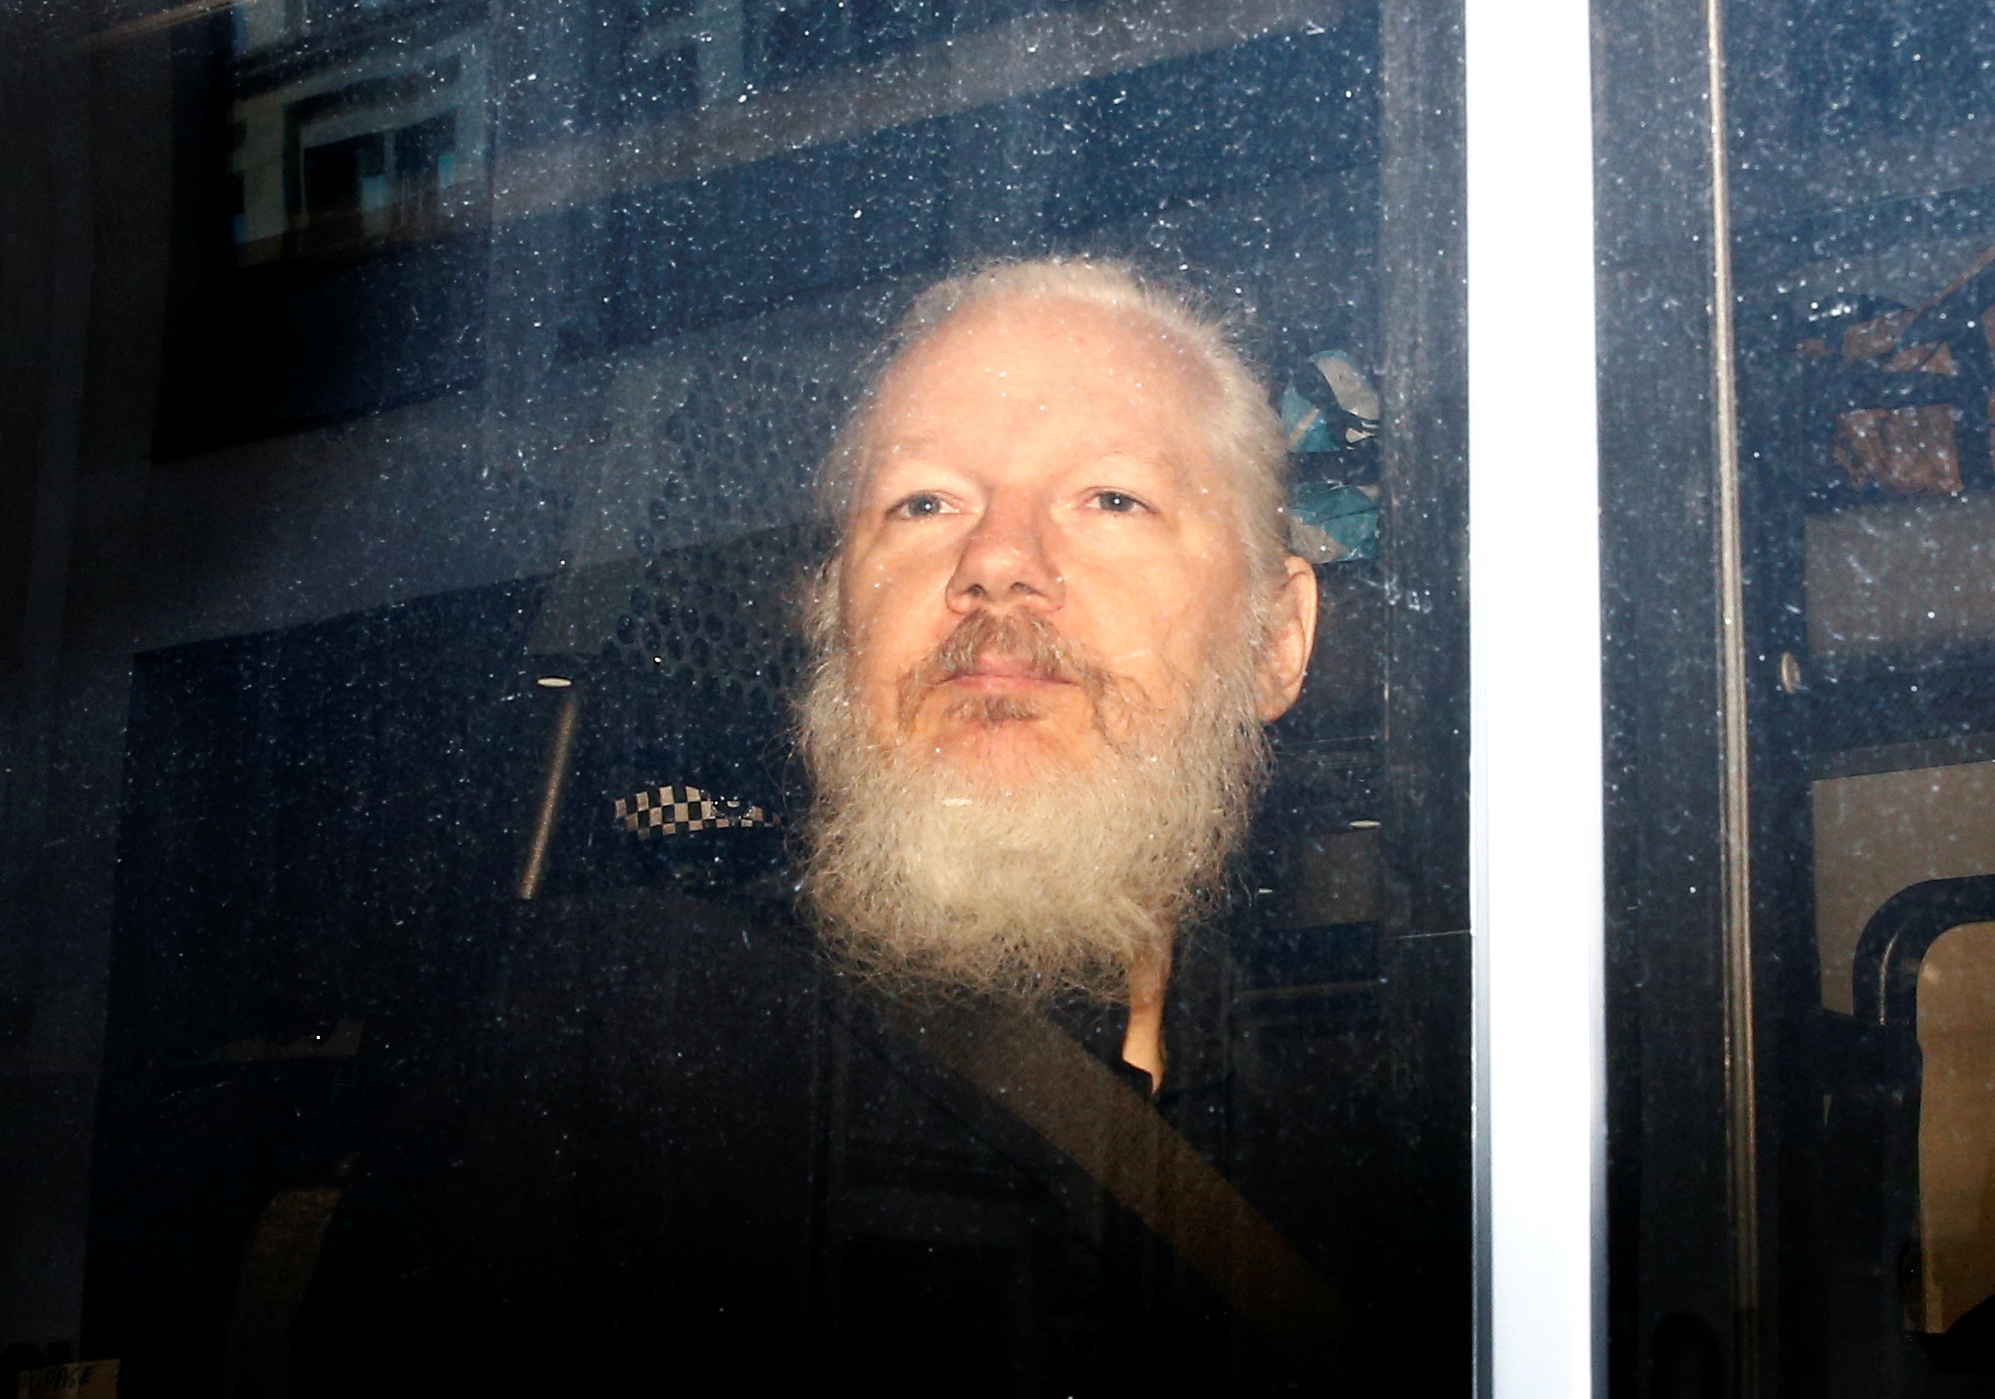 FILE PHOTO: WikiLeaks founder Julian Assange is seen in a police van, after he was arrested by British police, in London, Britain April 11, 2019. REUTERS/Henry Nicholls